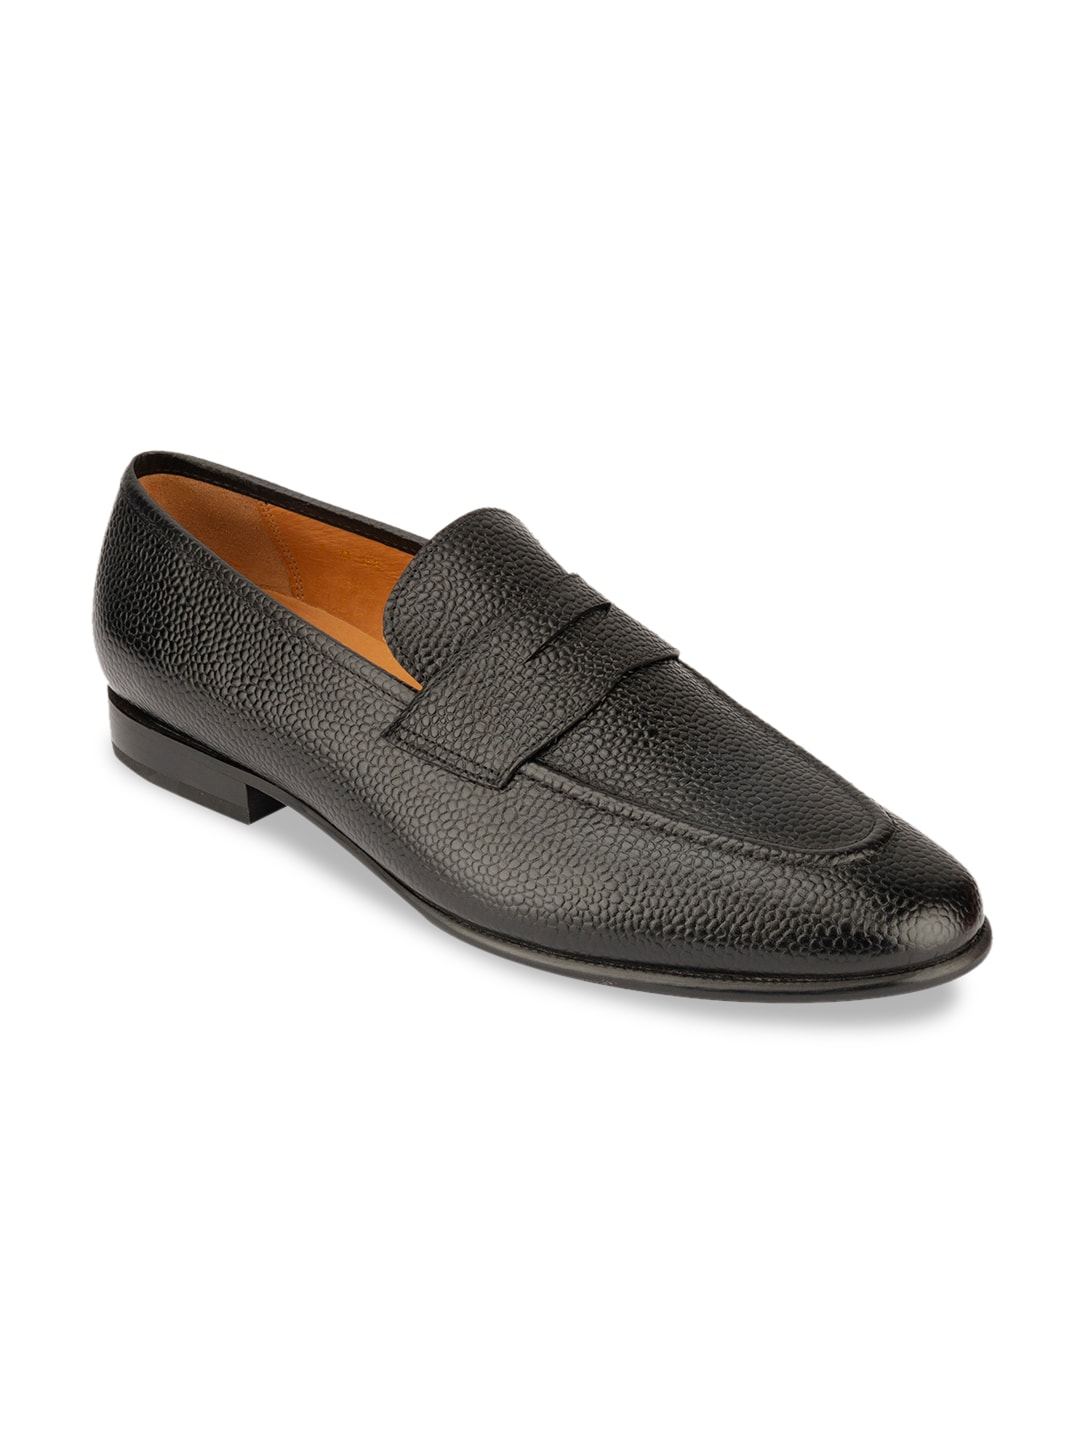 03dc7c43f Loafers Shoes For Men - Buy Loafers Shoes For Men online in India